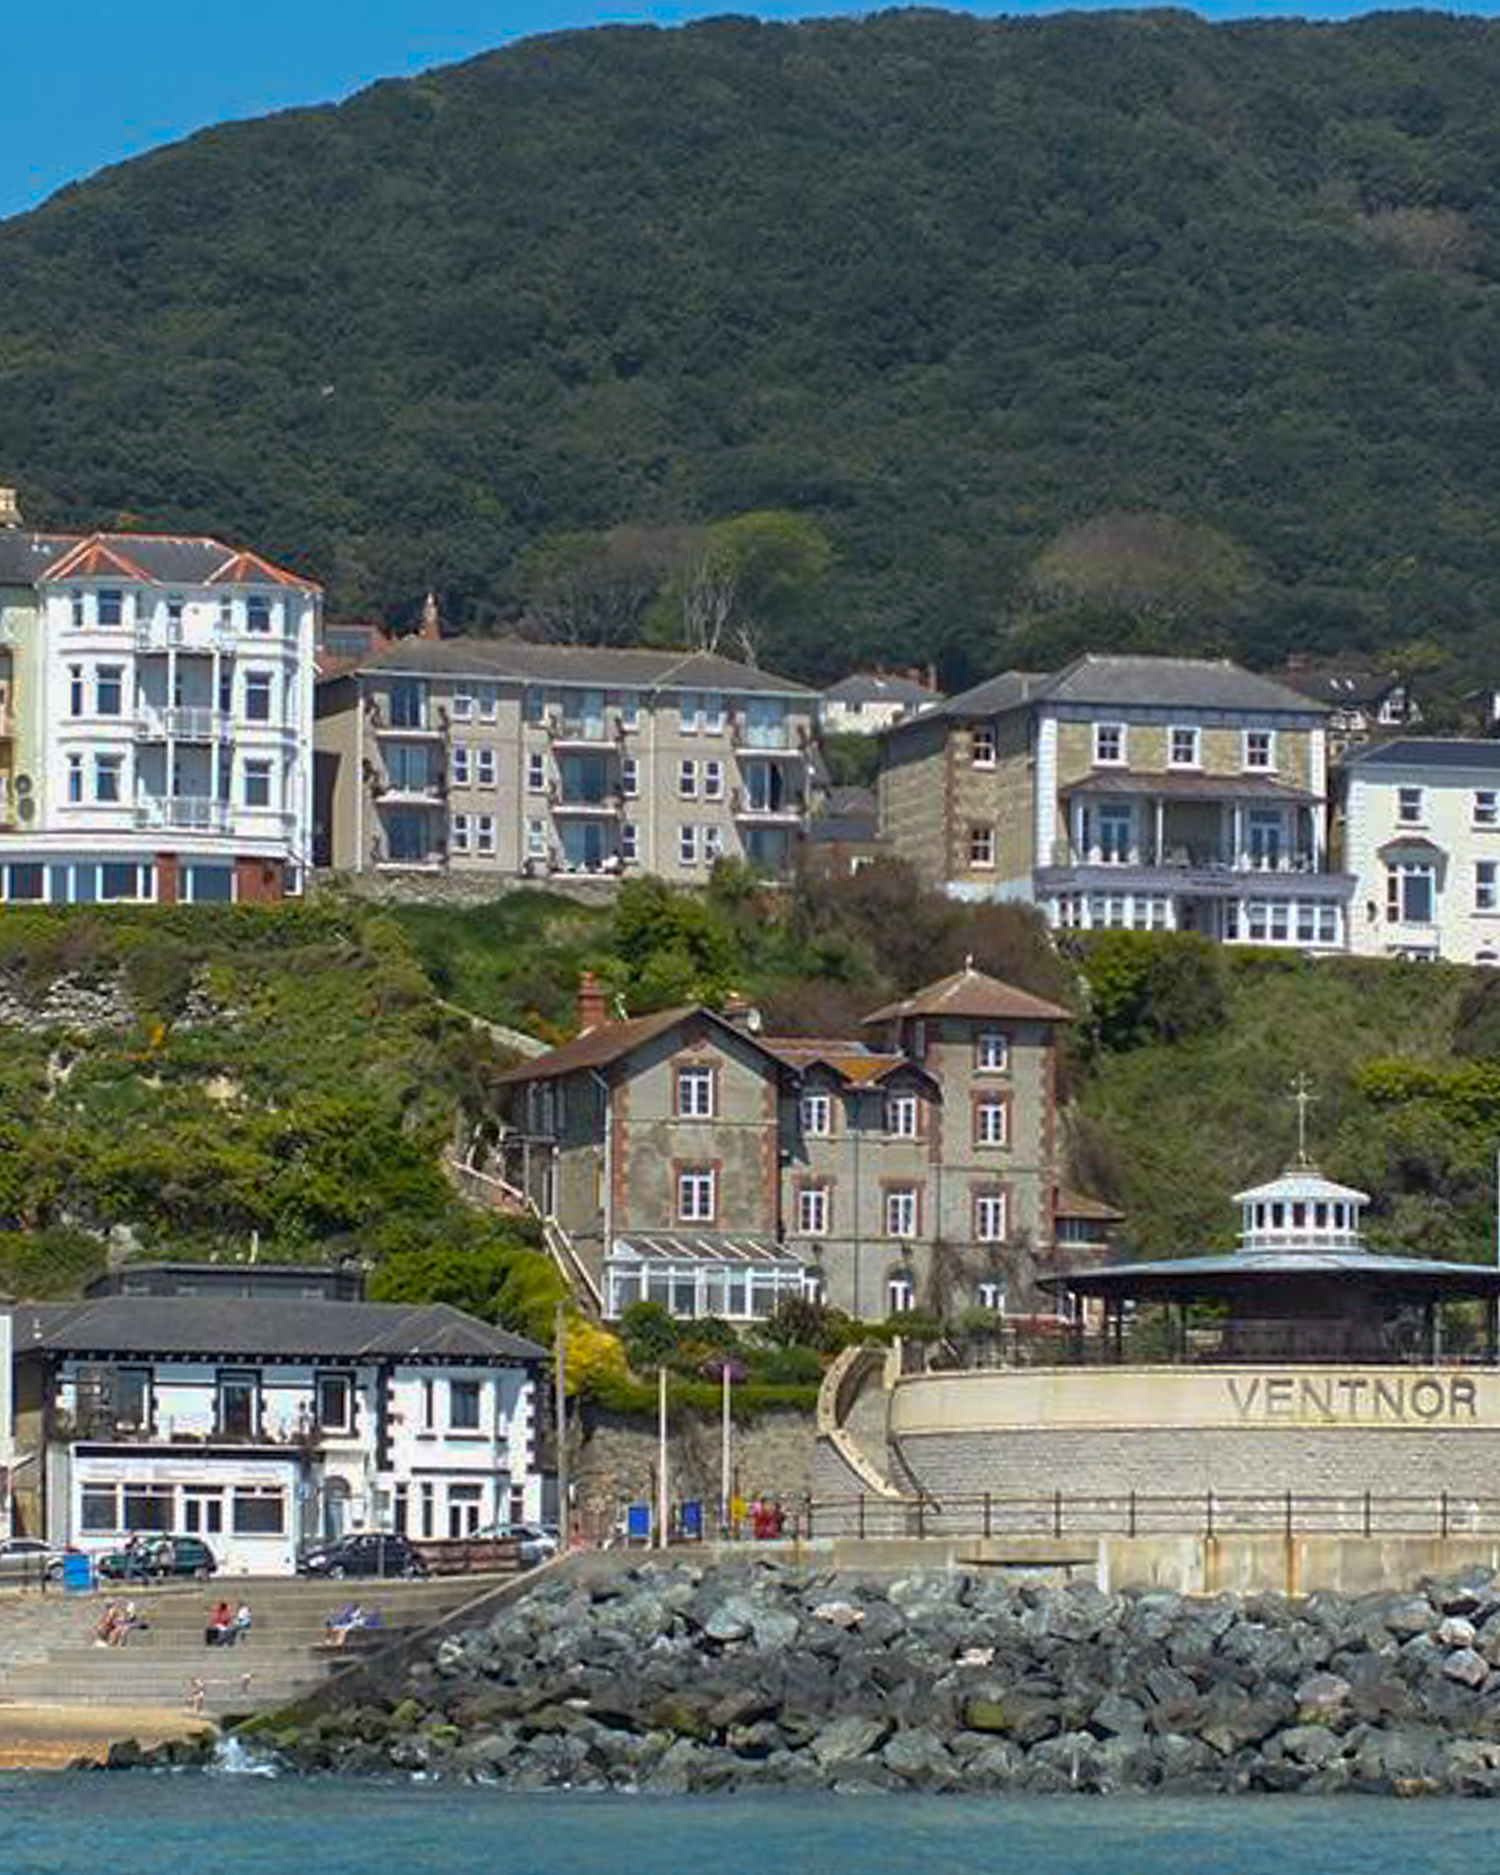 Ventnor Town. Credit Visit Isle of Wight